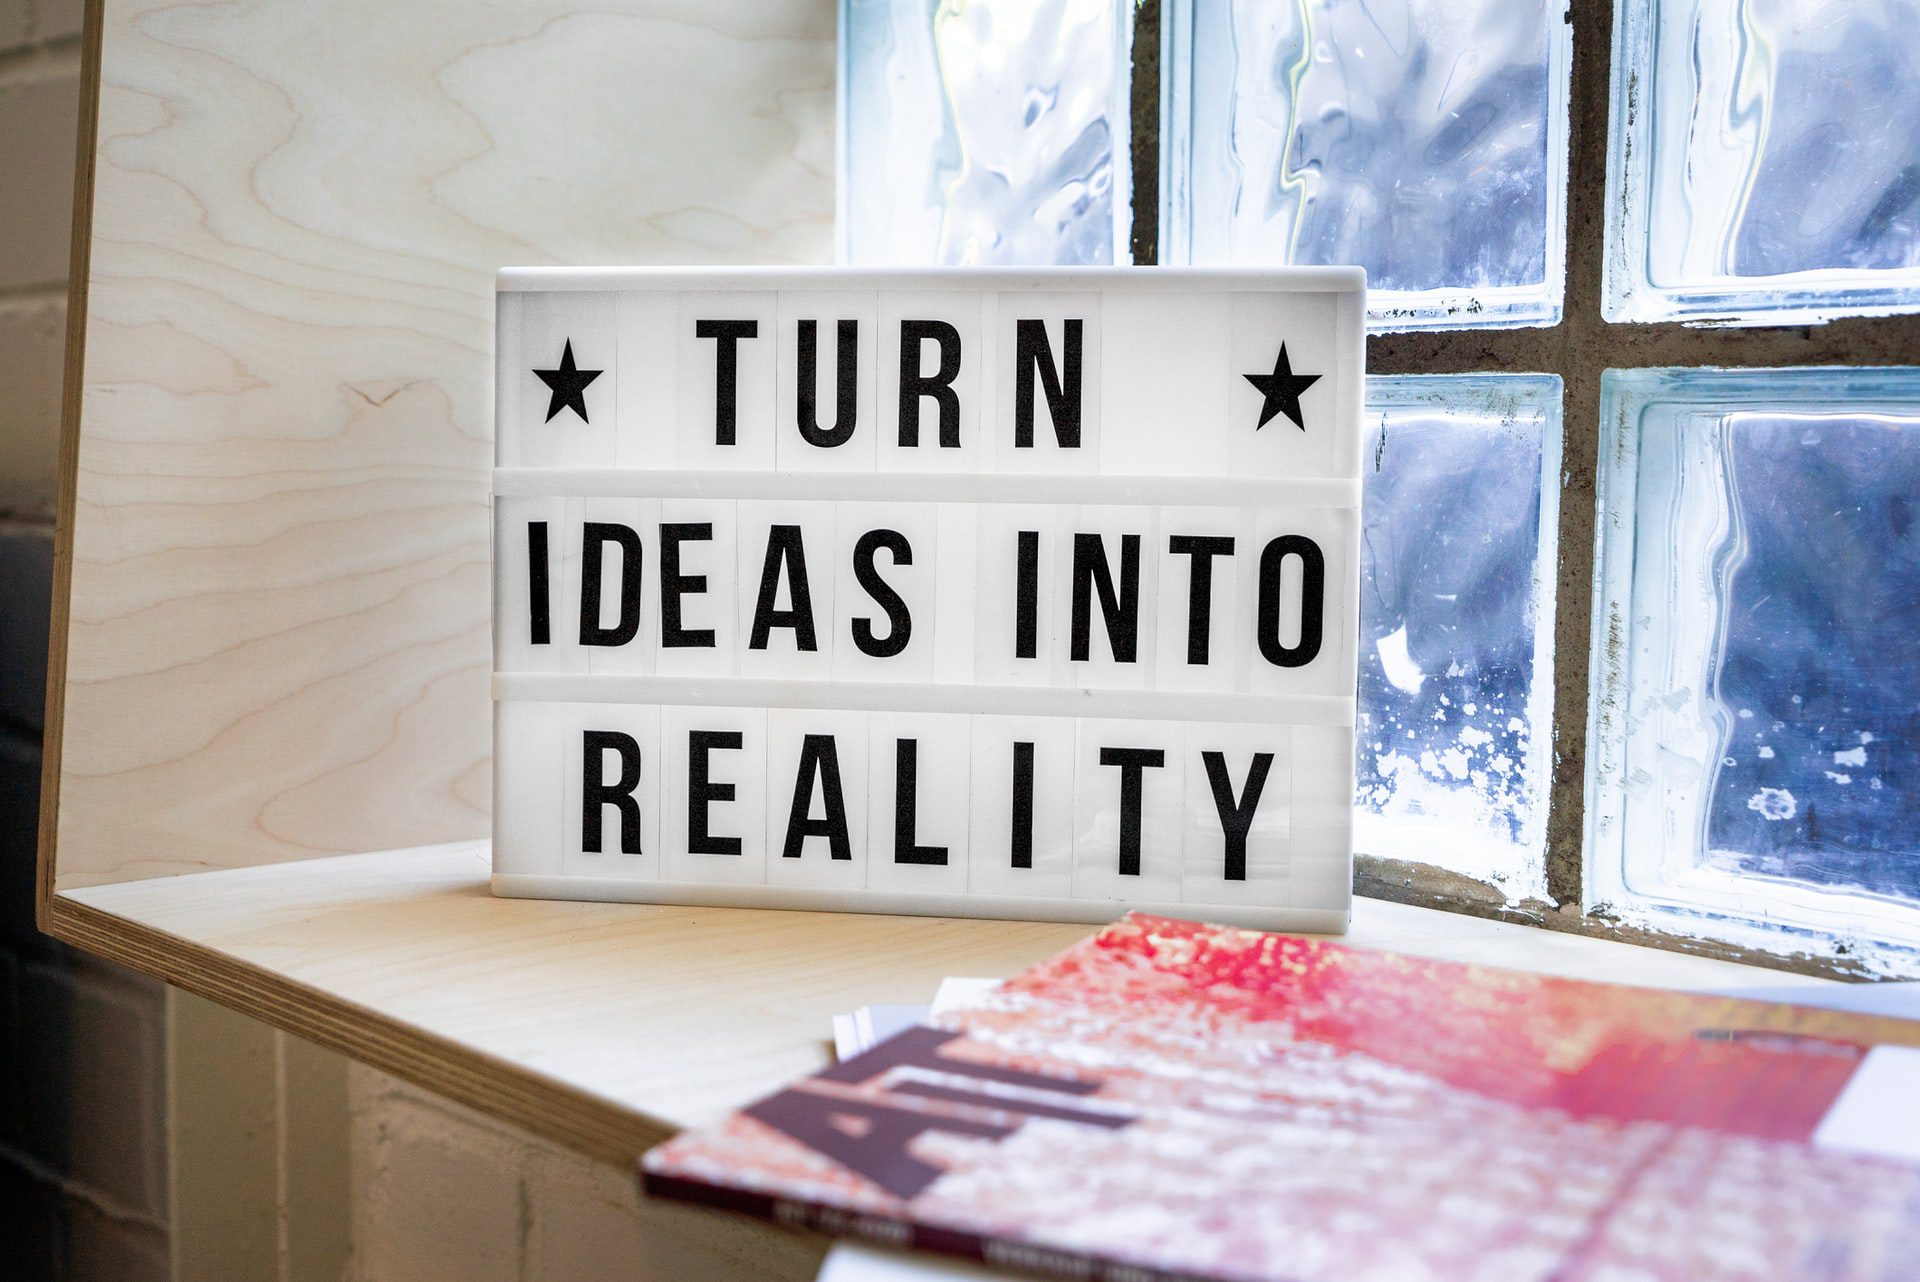 A light box on window sill showing turn ideas into reality